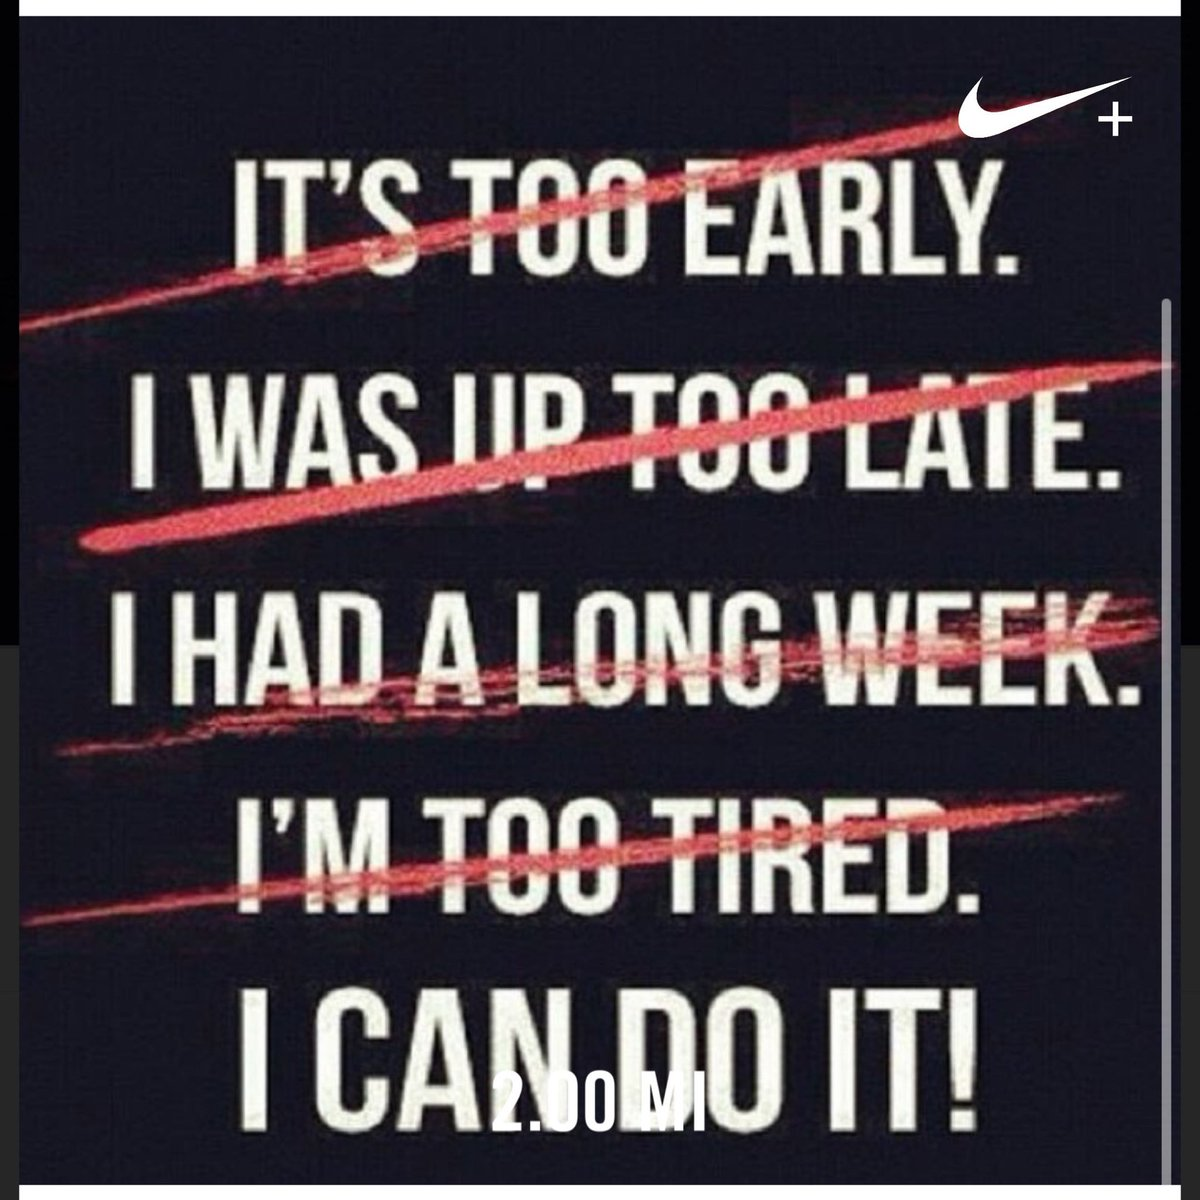 5 am weekday workouts month 2 complete. 45 min boot camp with 2 mile run complete. Ran 2.00 miles with Nike Run Club #noexcuses #joy #oklahoma #running #fitness #nikerunning #first90days #intentions #instarunner #girlwashyourface #girlstopapologizing #5tothrivepic.twitter.com/8KIIpR0QH2